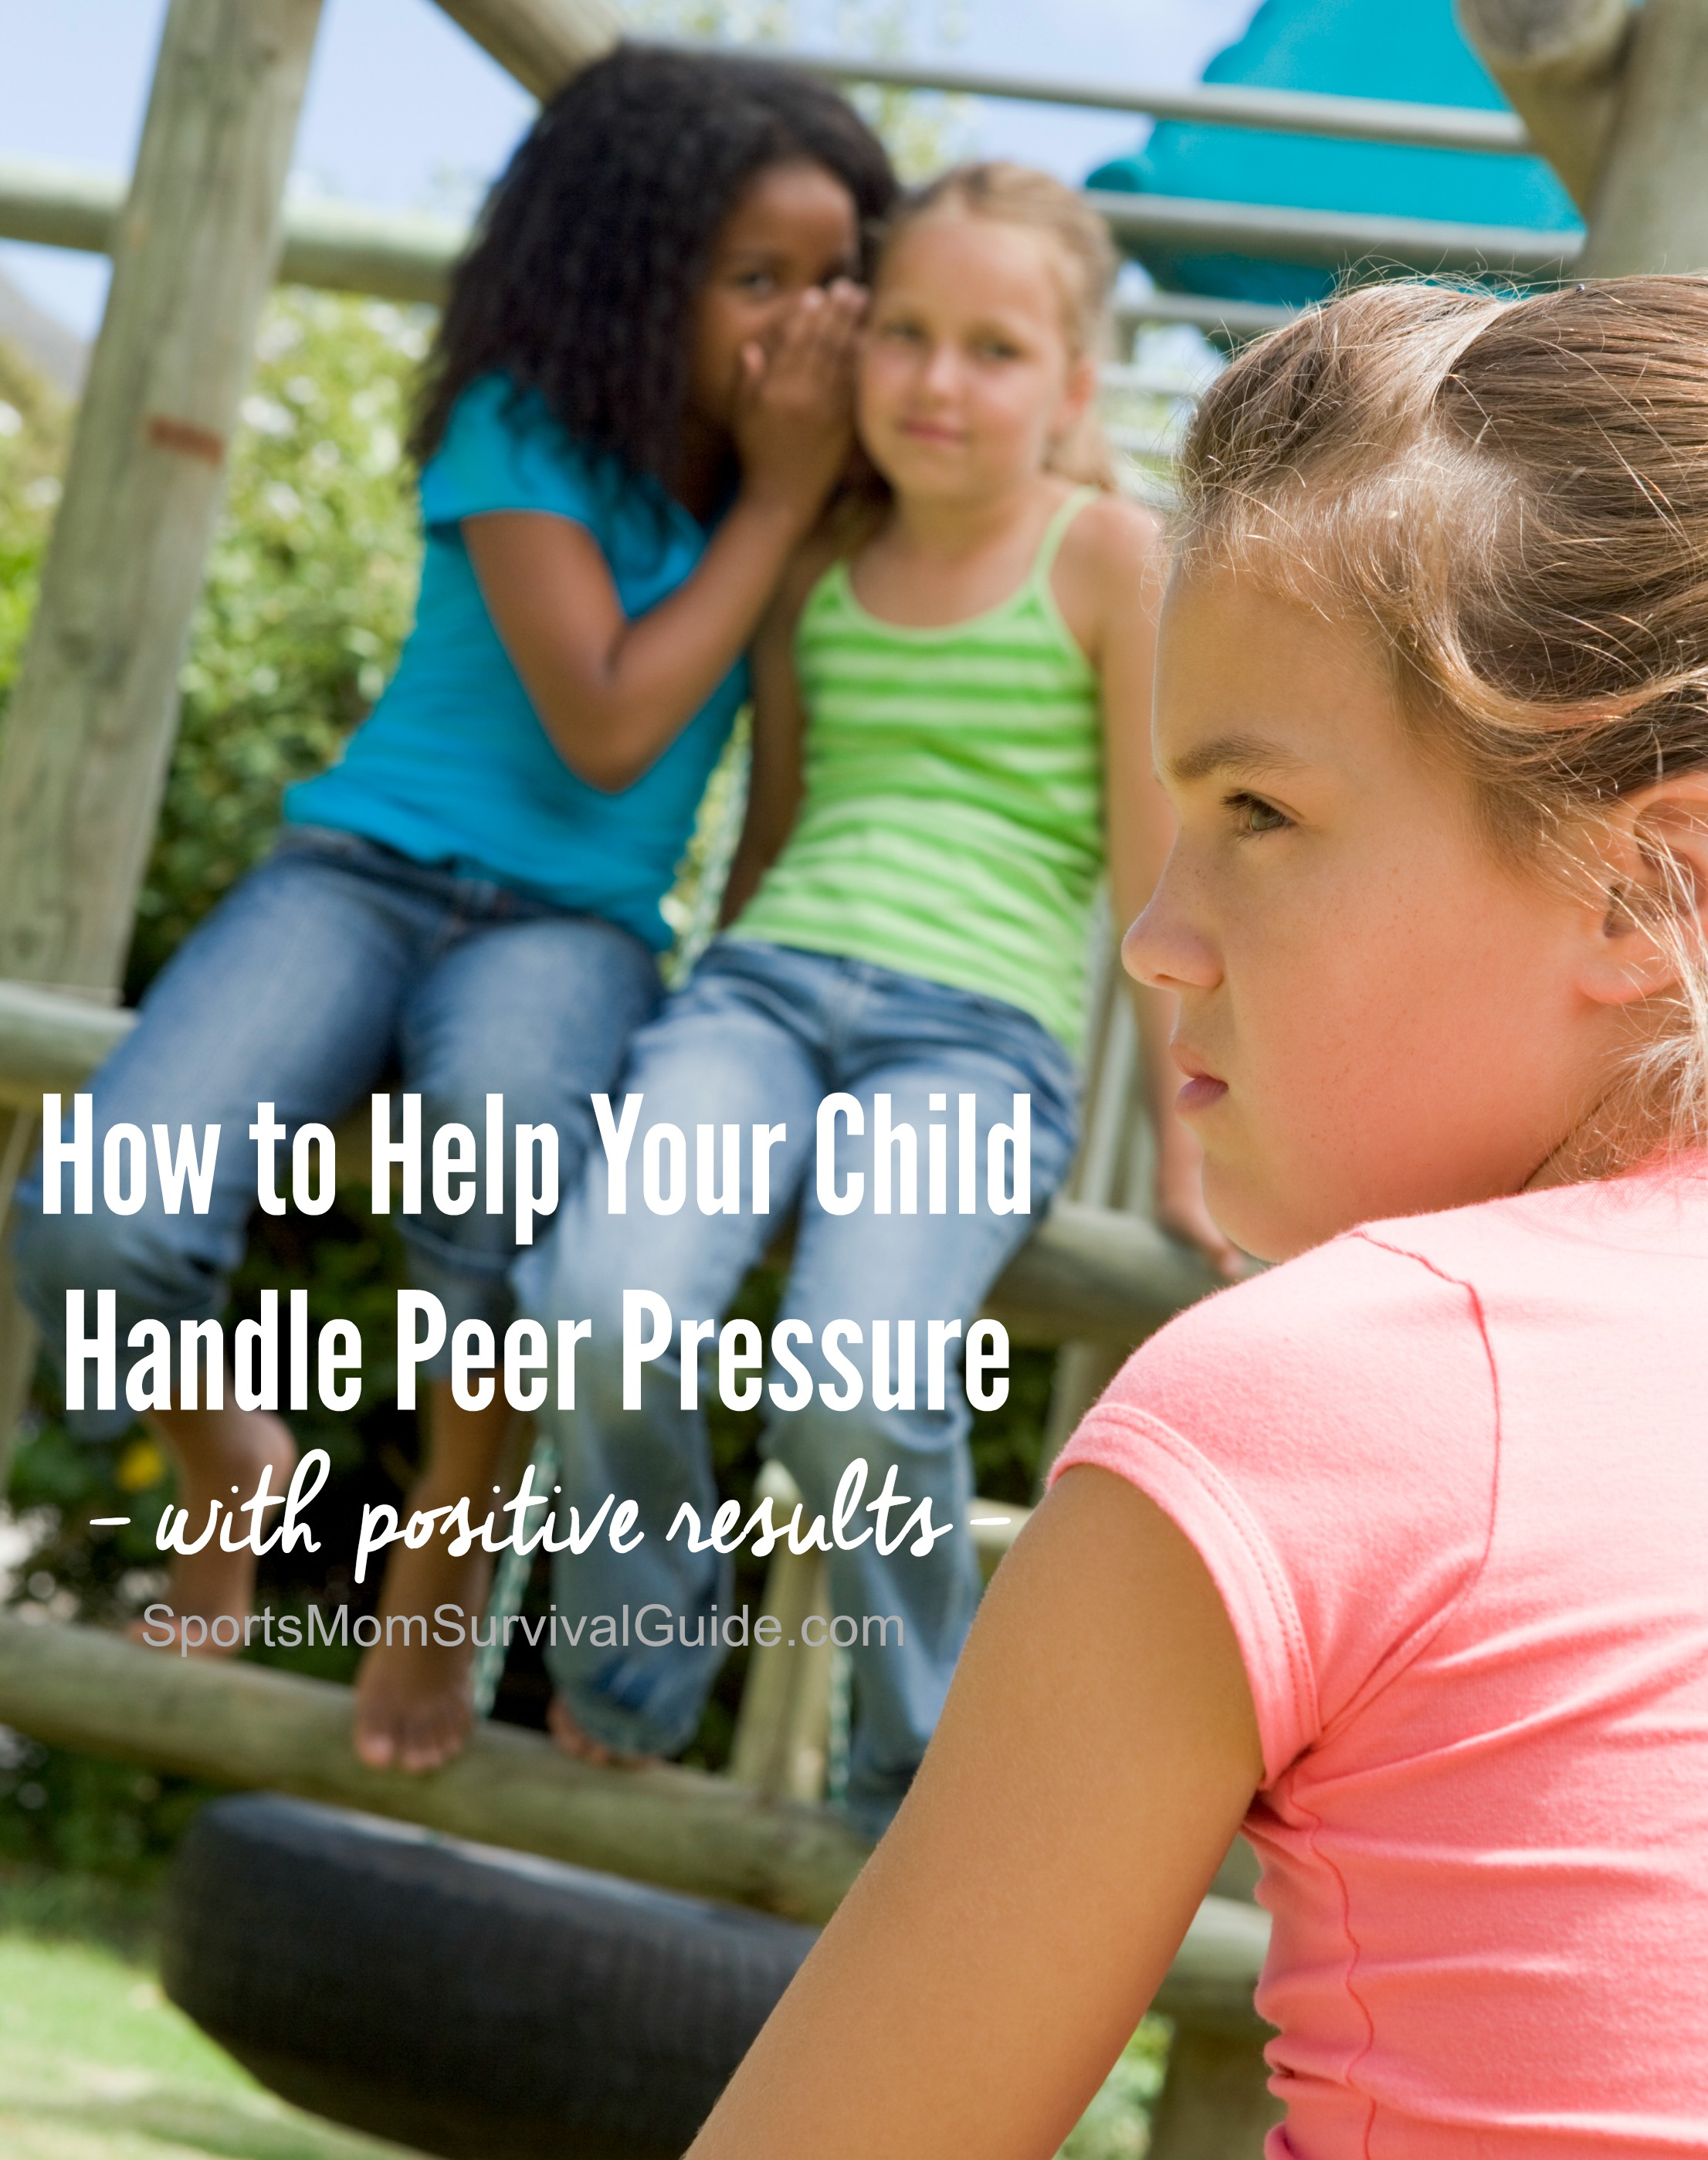 We all experience peer pressure BUT it's the negative influence that we parents worry about most... leading our child to make bad judgment calls or to participate in risky activities. Get some tips to help your child handle peer pressure with positive results.